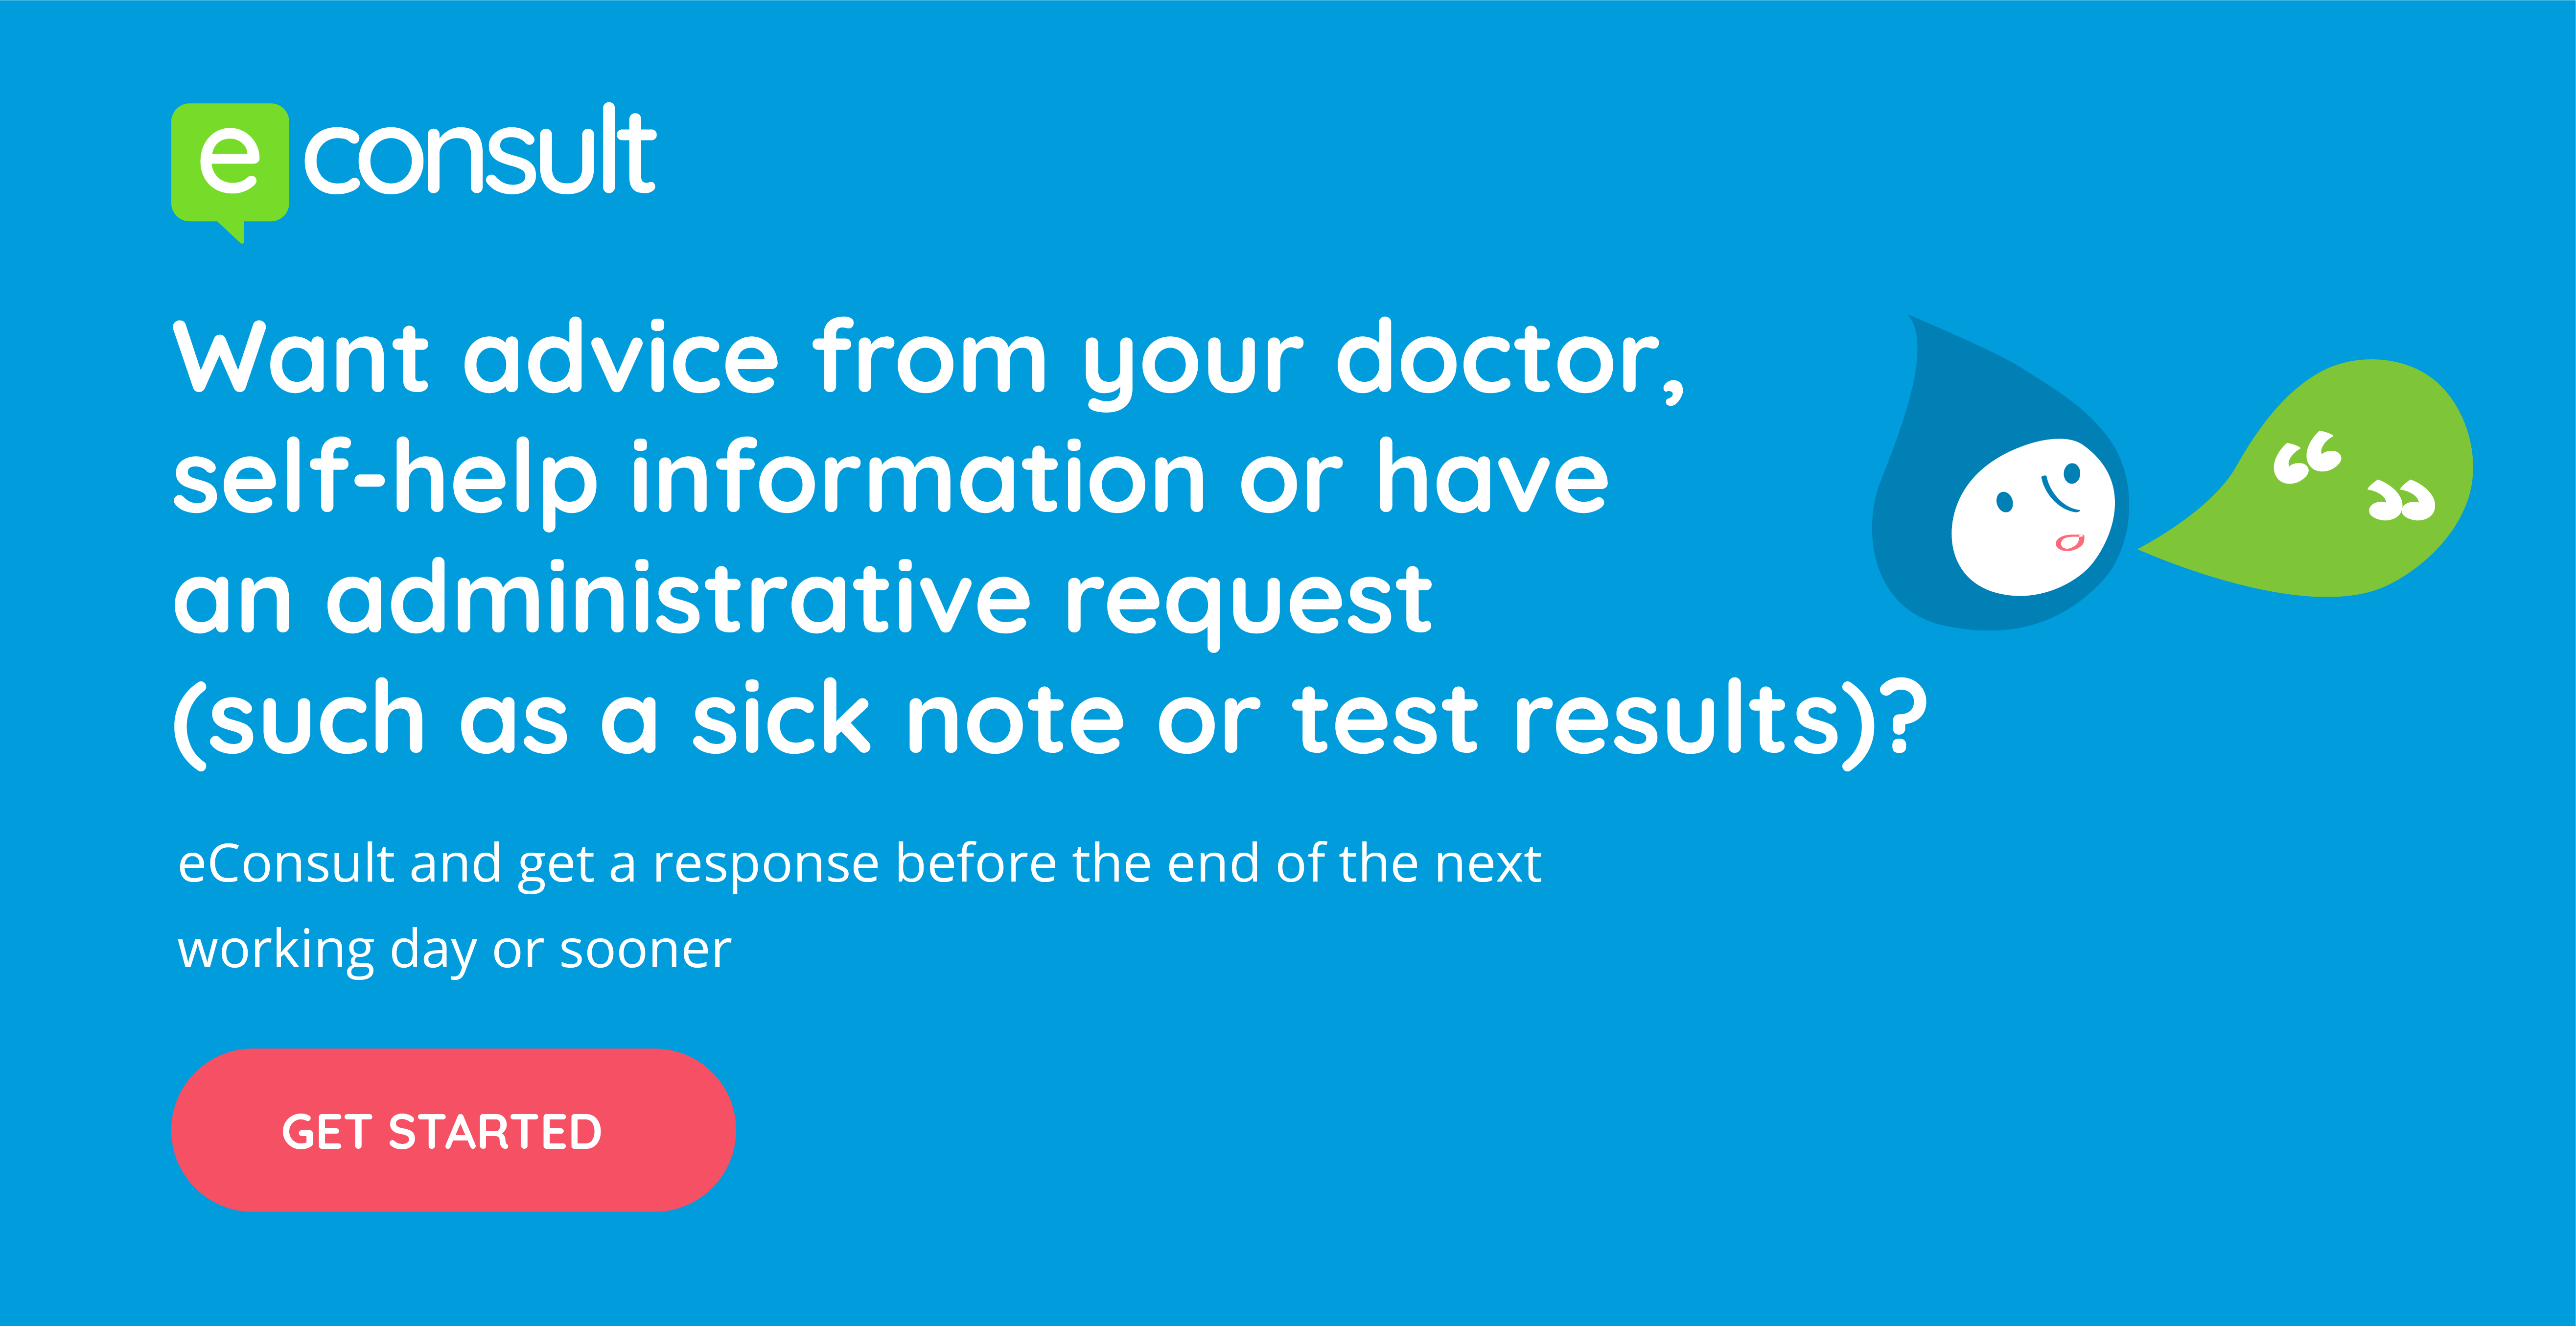 econsult want advice from your doctor self help information or have an administrative request such as a sick note or test results econsult and get a response before the end of the next working day or sooner get started